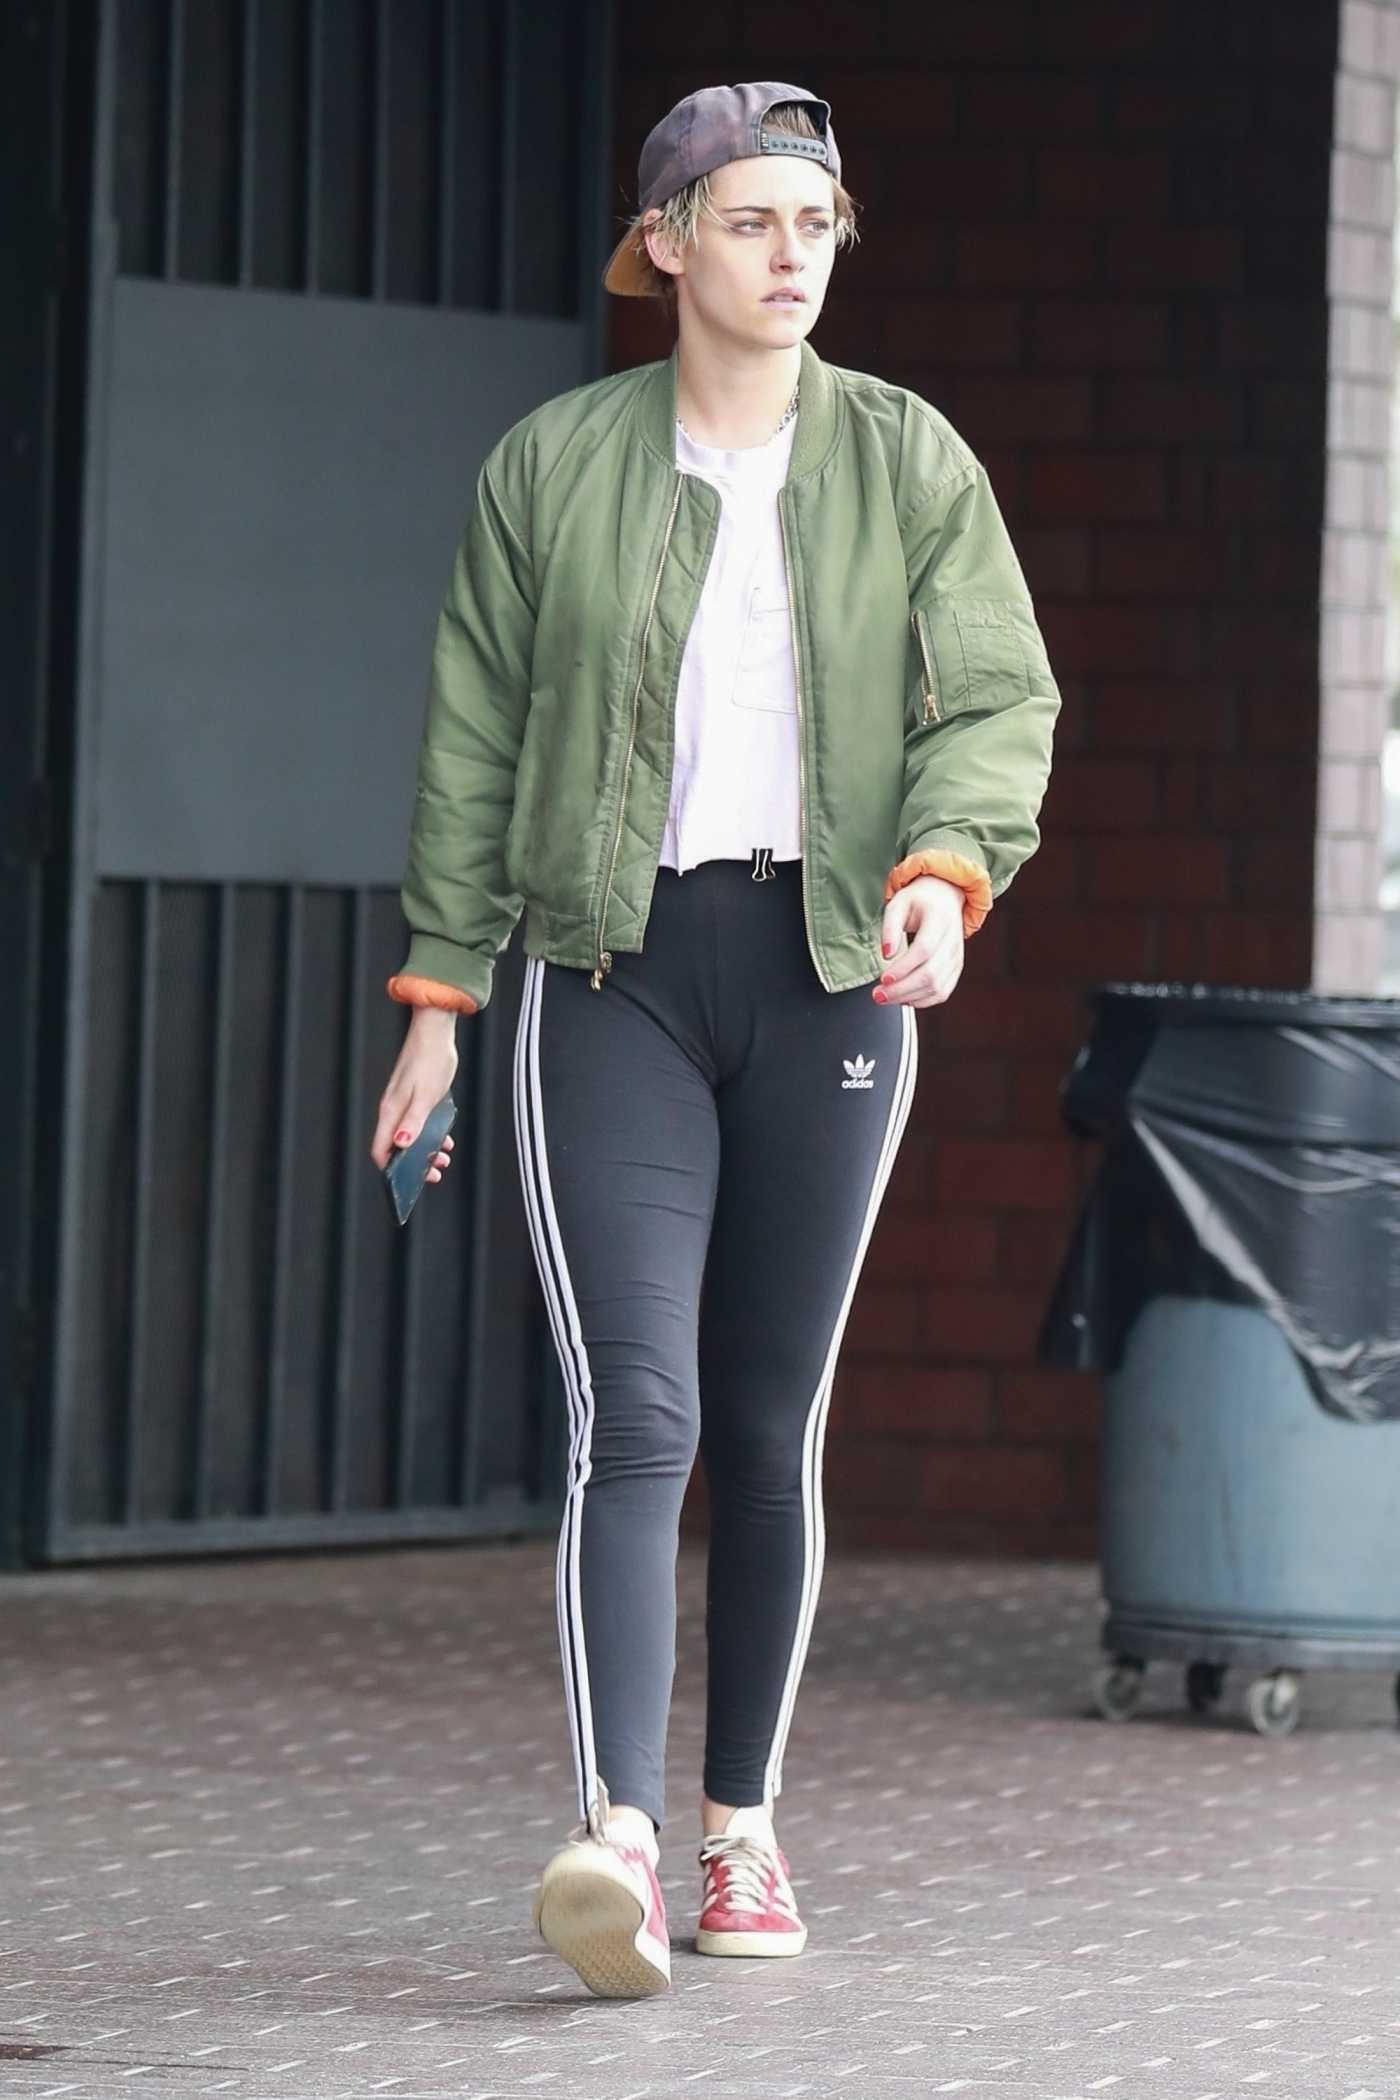 Kristen Stewart in a Green Bomber Jacket Leaves a Nail Salon in Hollywood 04/29/2019